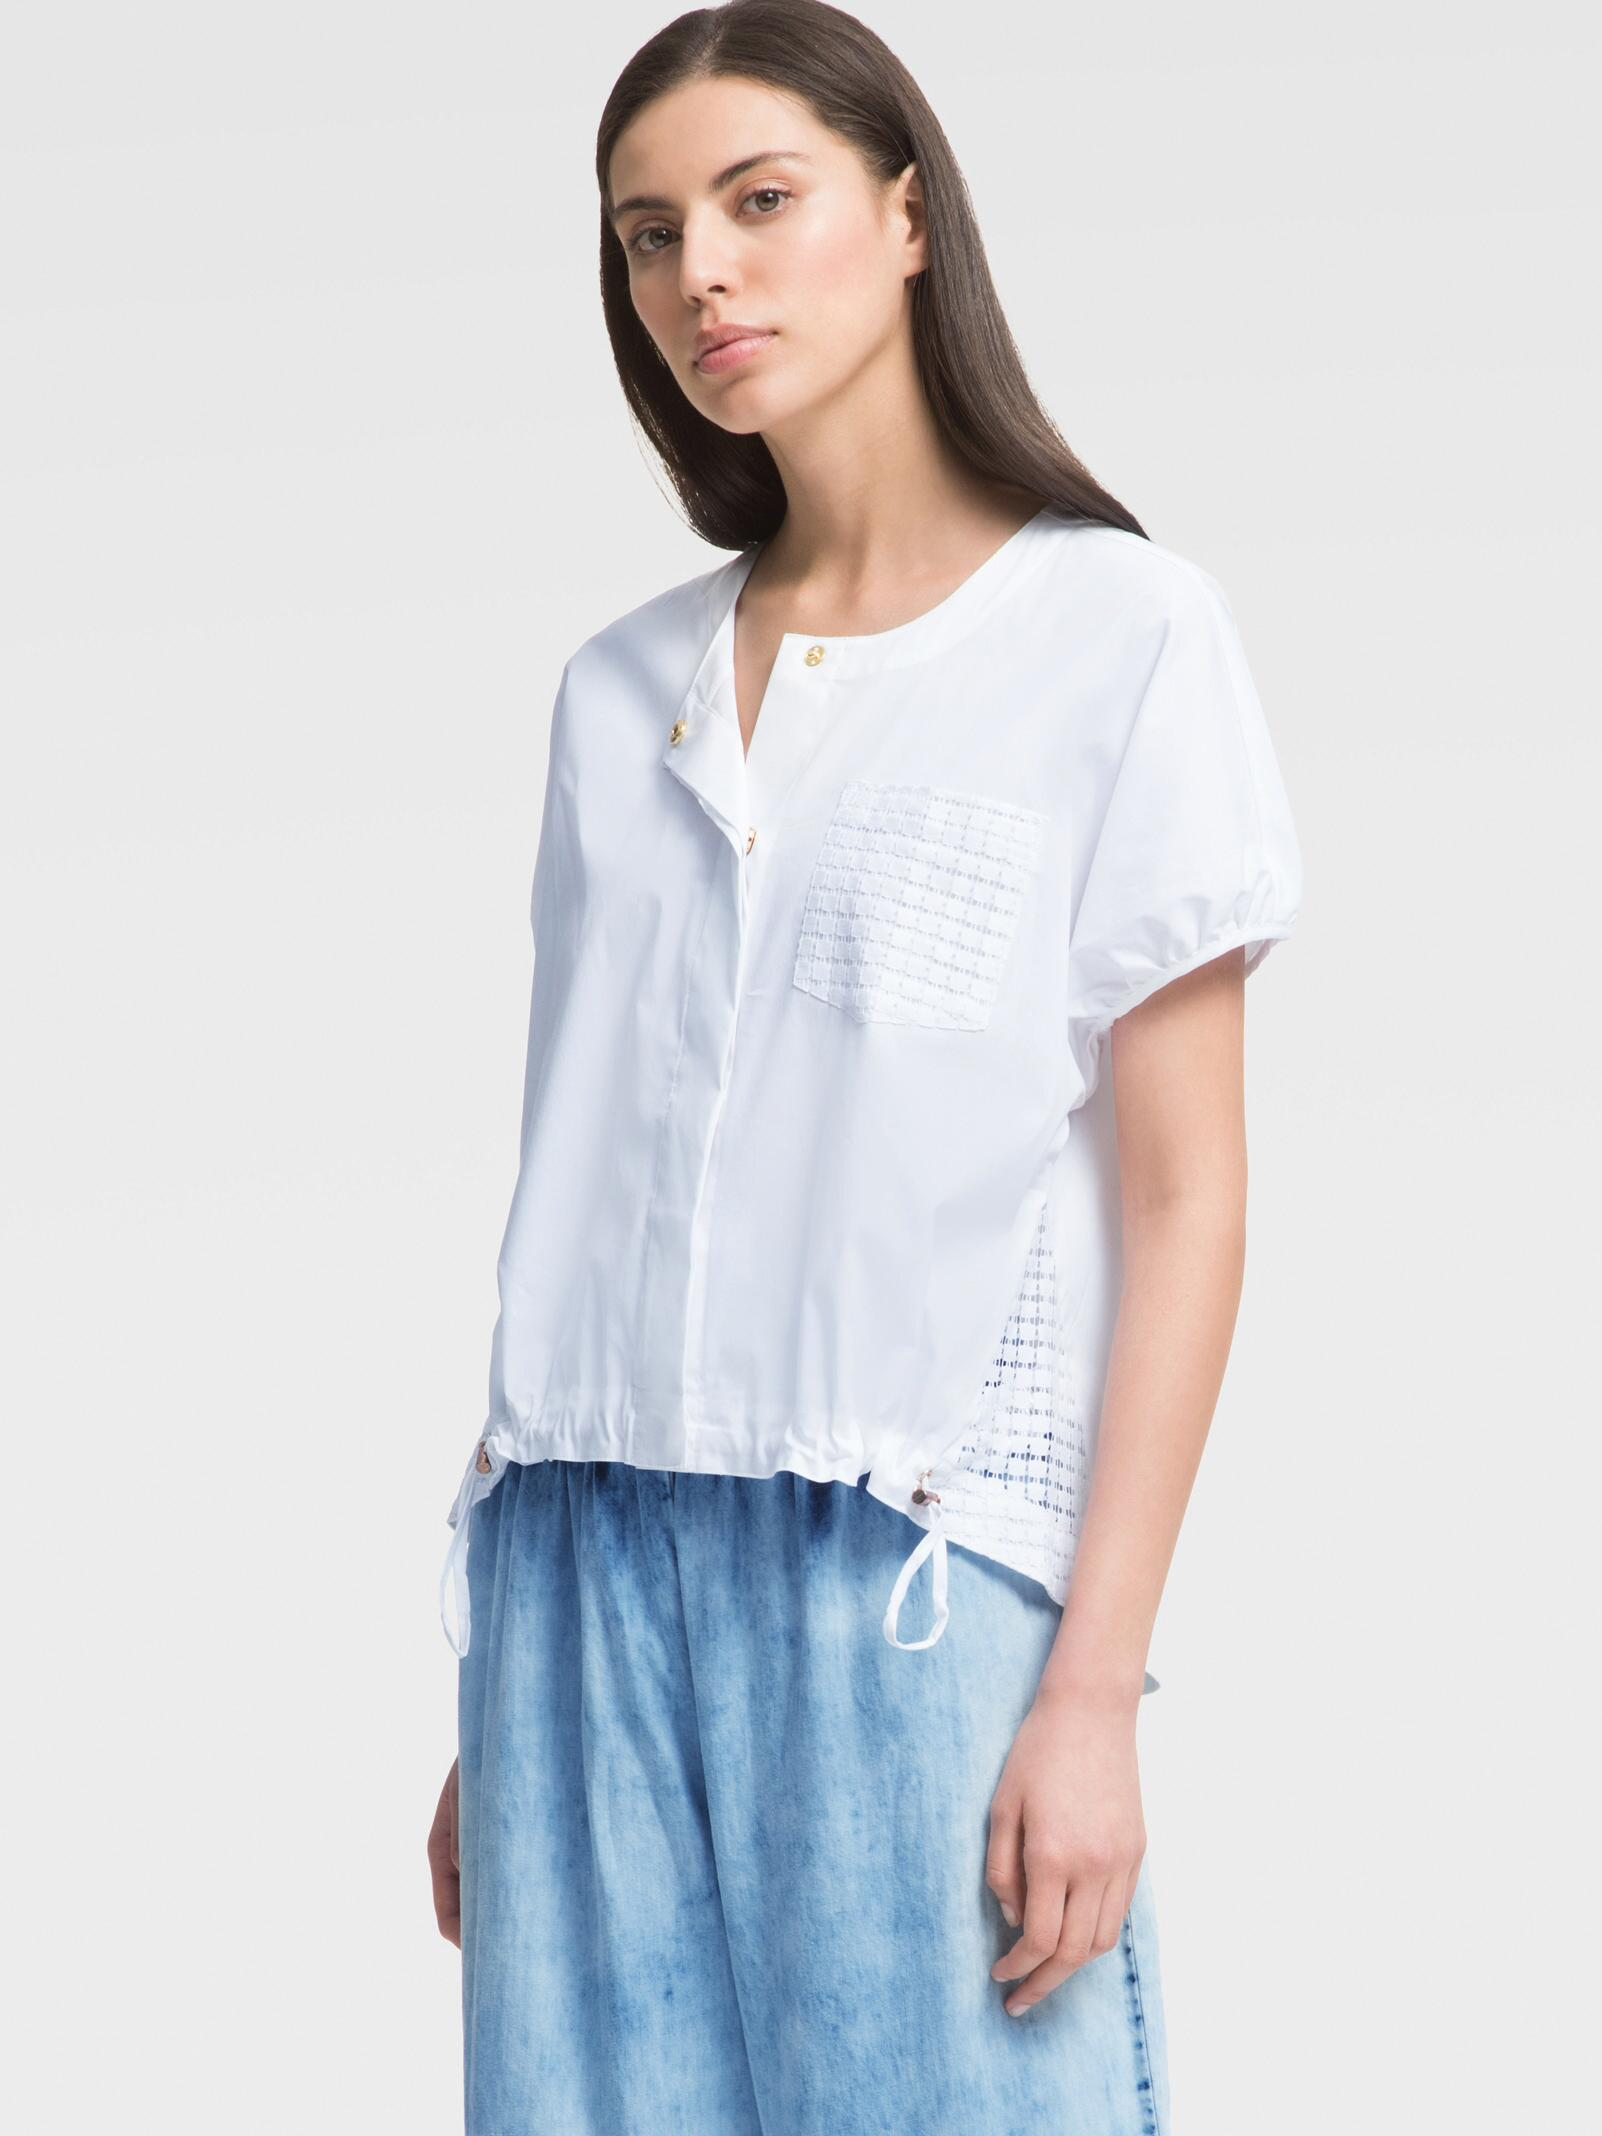 SHORT-SLEEVE POPLIN TOP WITH EYELET DETAIL DKNY Outlet Discount 2018 New Cheap Price Aberdeen Outlet Best Prices iAYzH